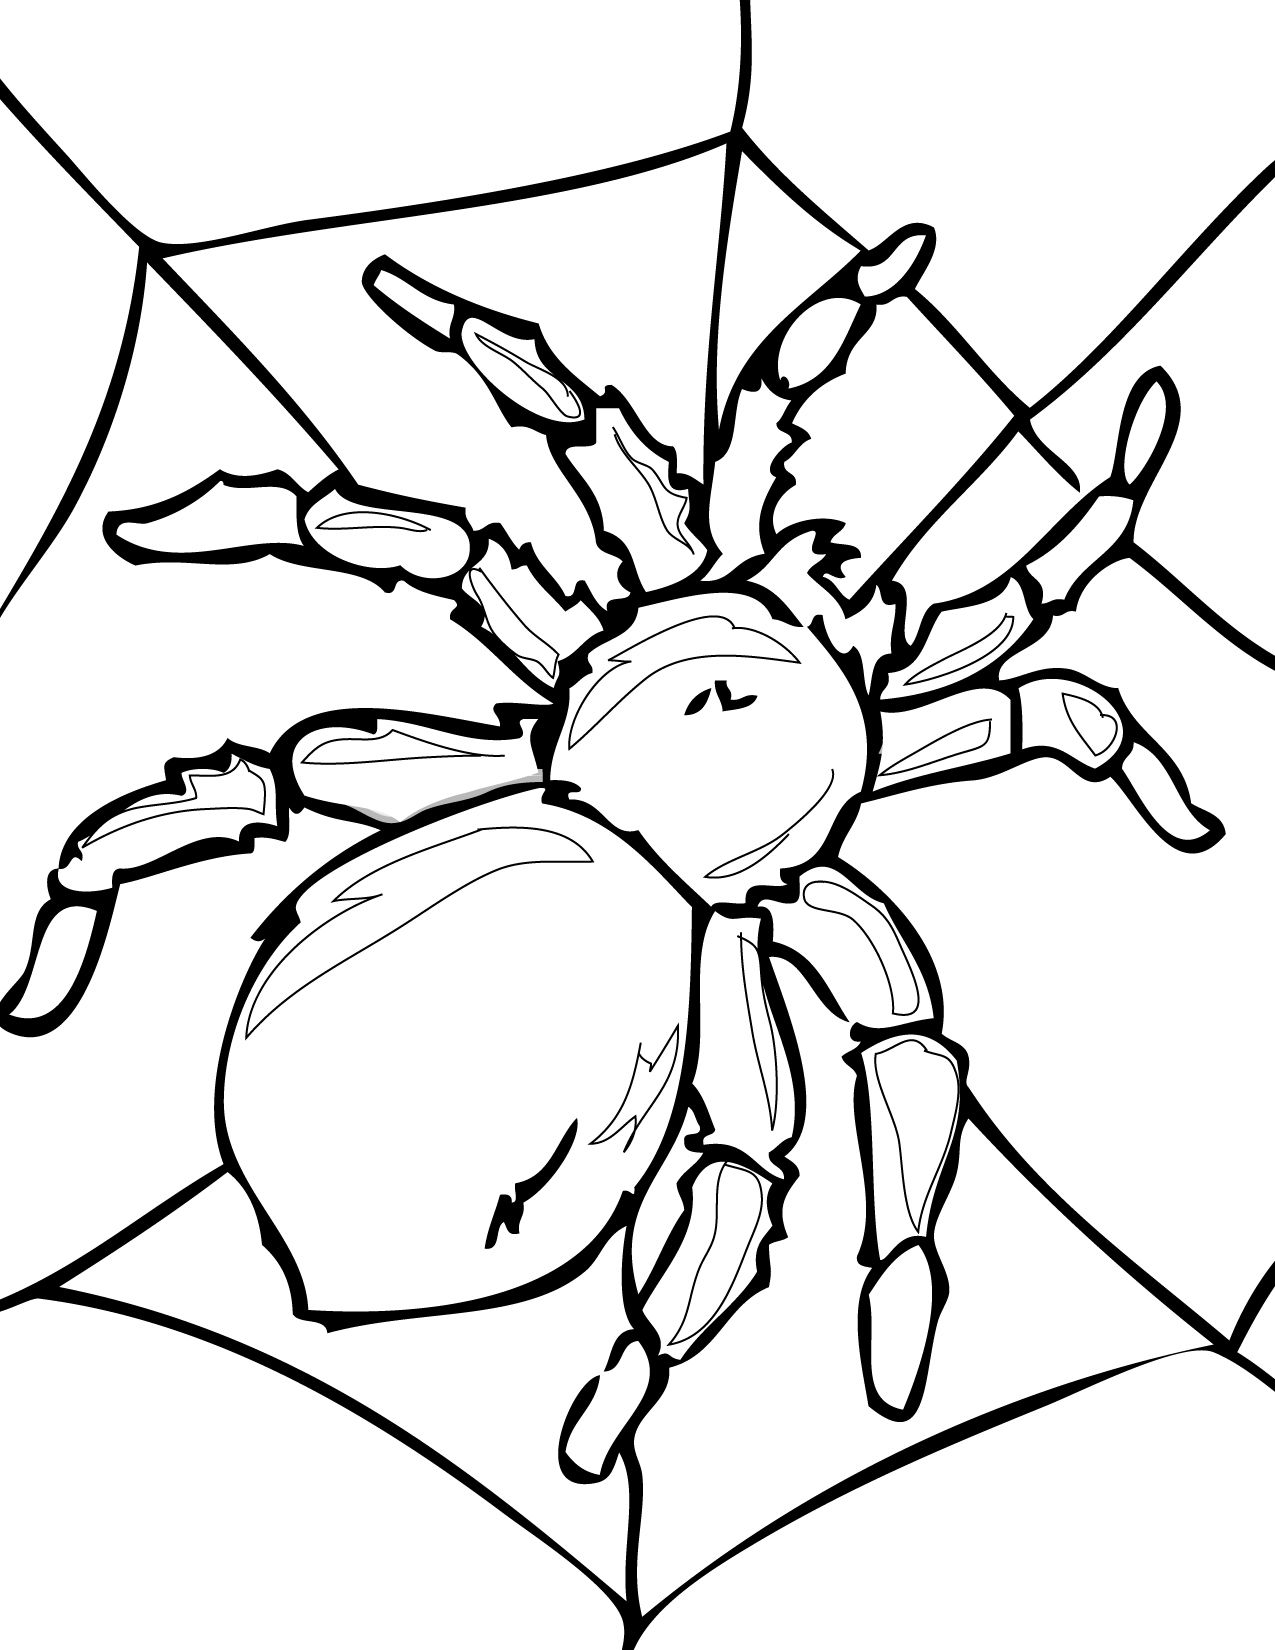 Spider Coloring Pages For Kids Free Online Printable Sheets Get The Latest Images